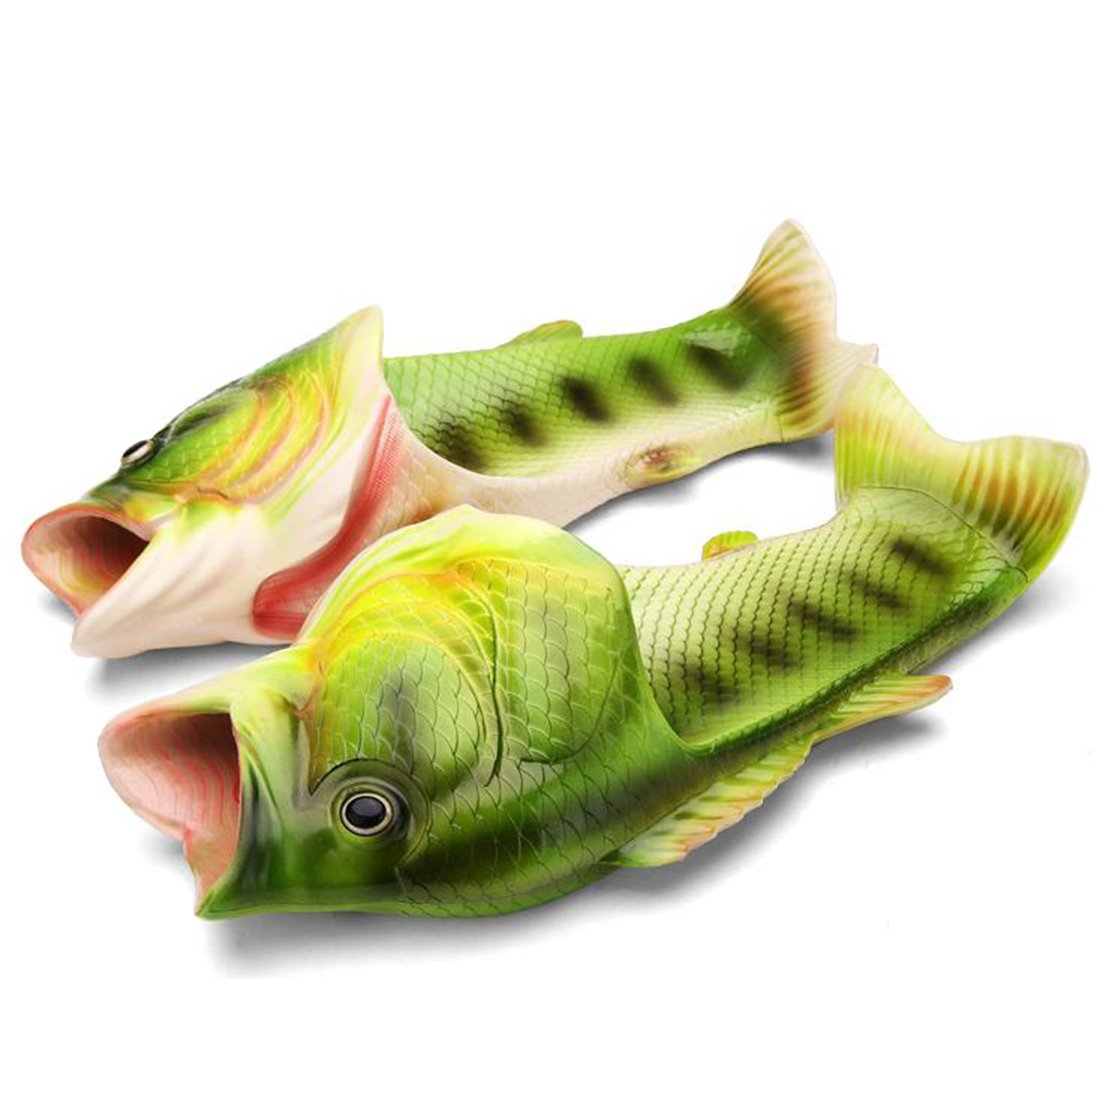 CREE Fish Animal Slippers Summer Beach Sandals Shower Slippers Non-Slip Beach Shoes Wear for Women Men and Kids Casual Shoe (8-8.5 Male US, Green)